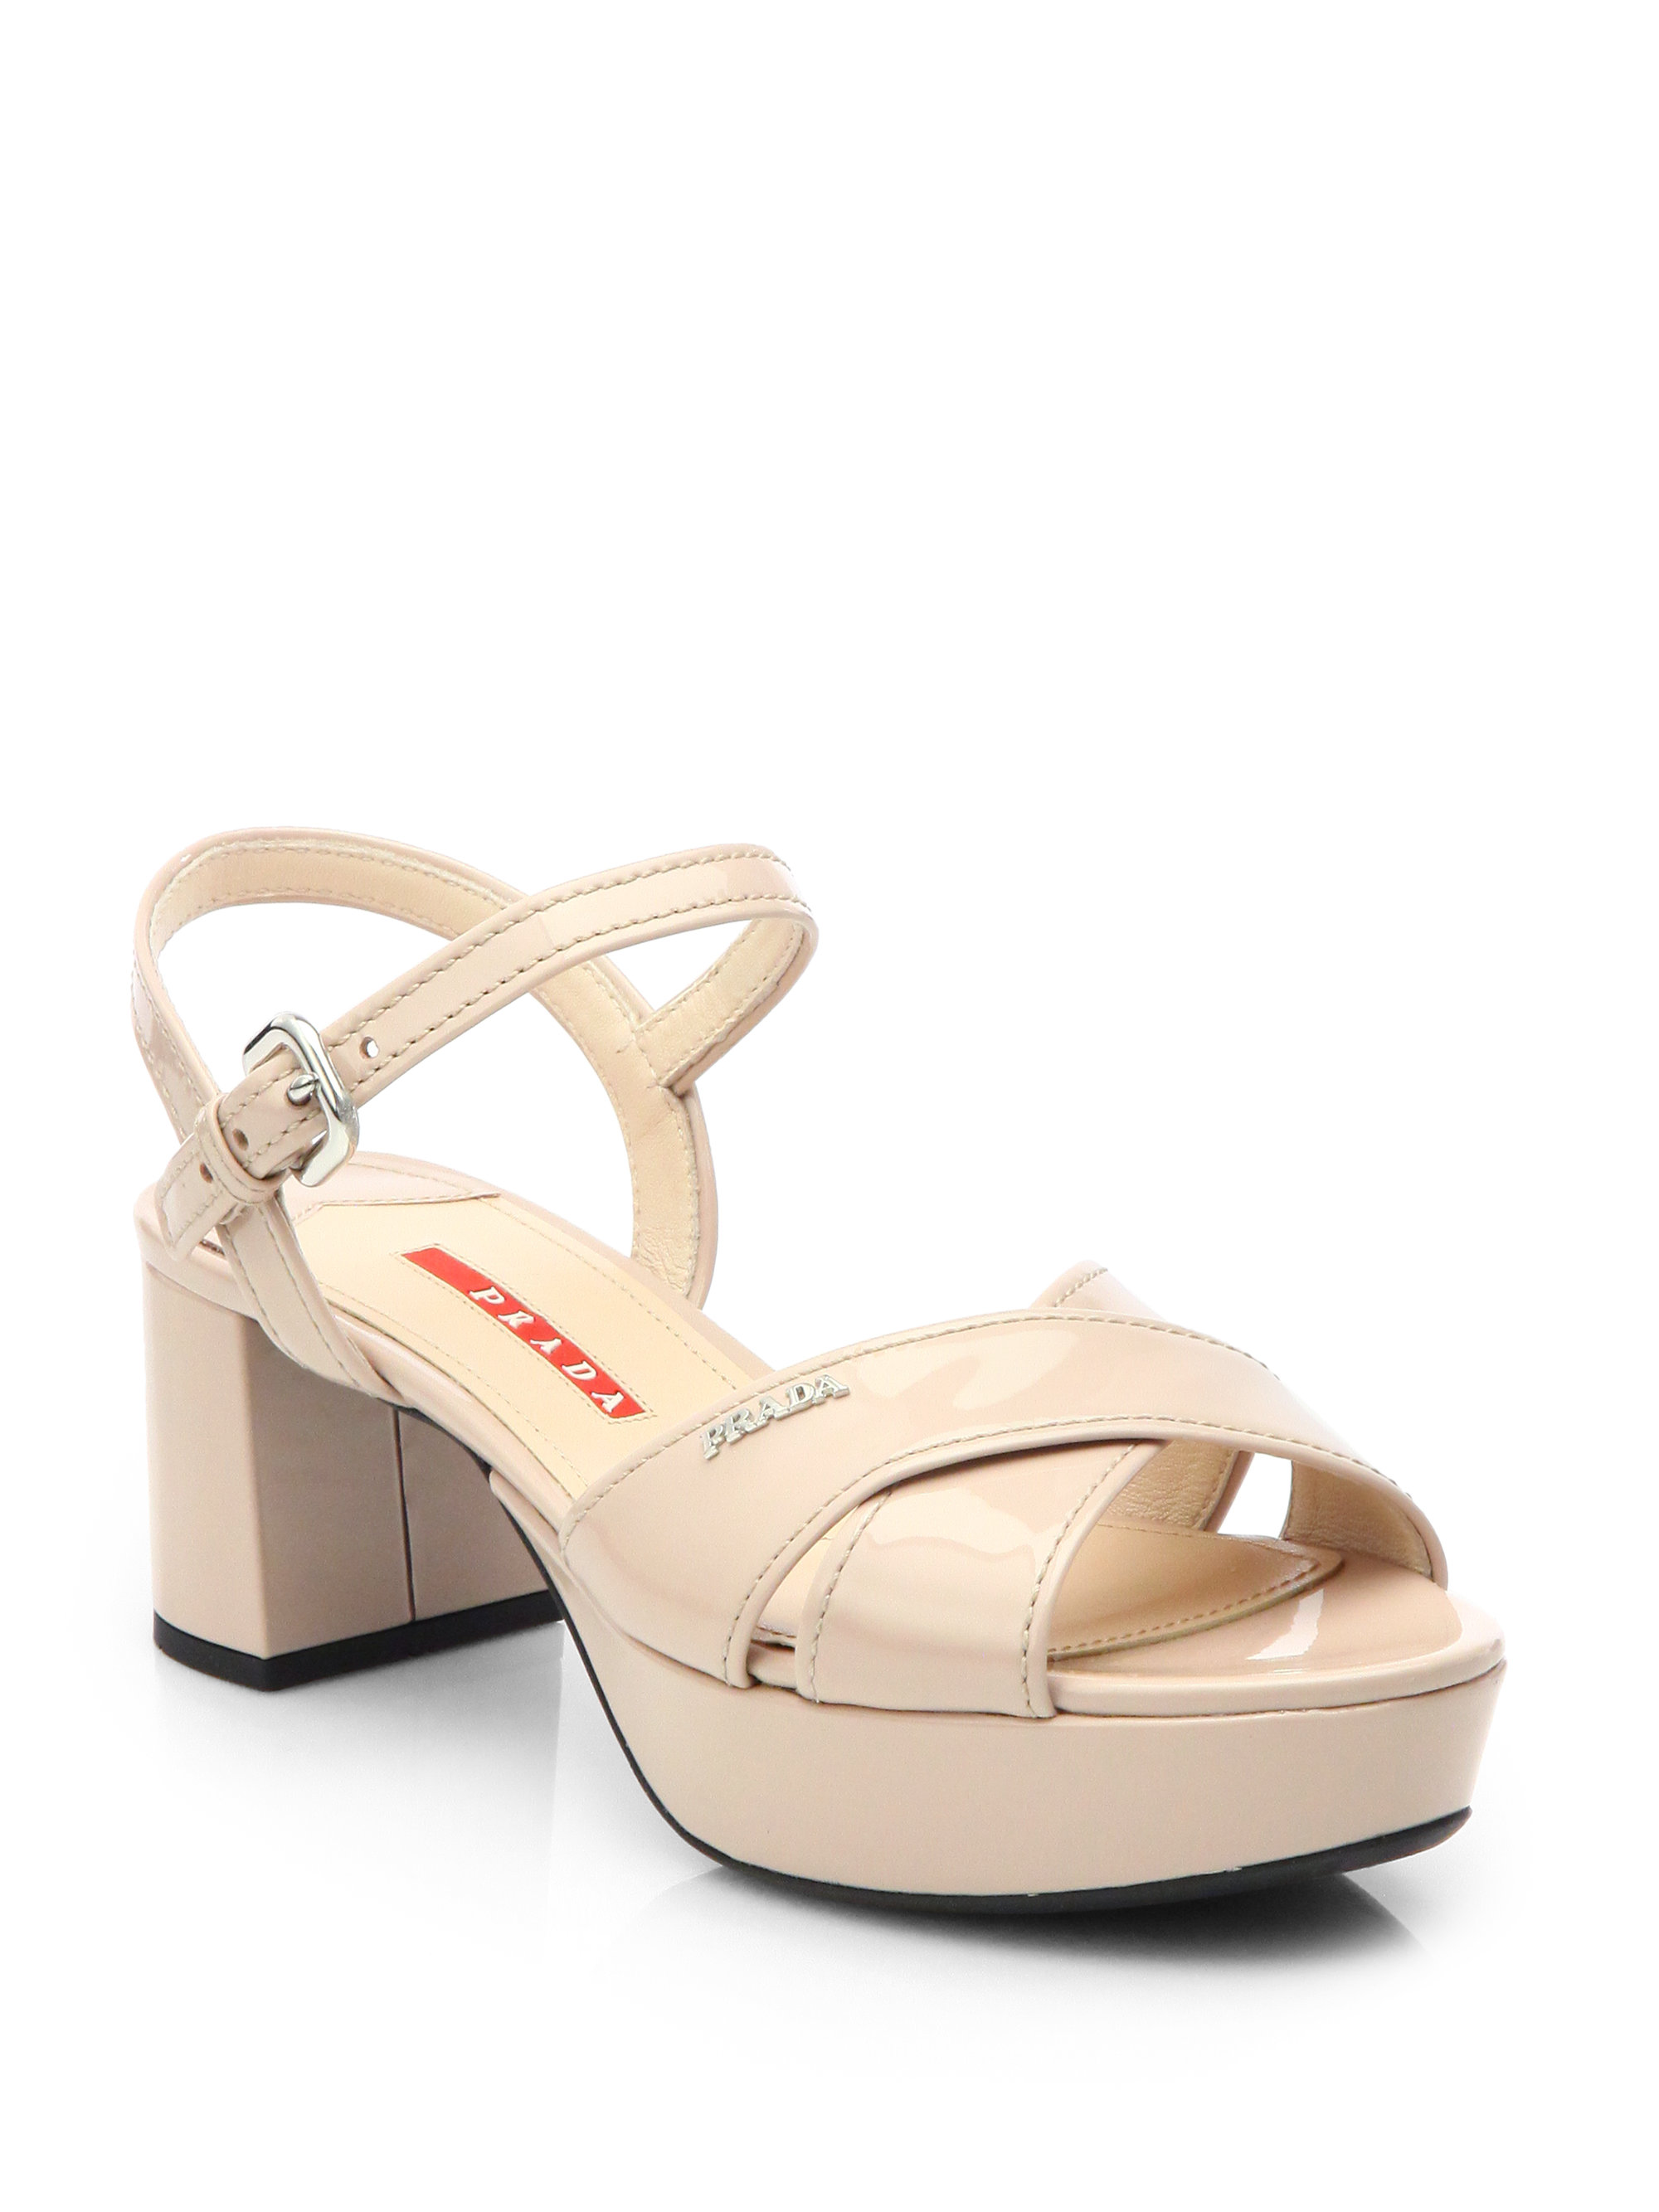 bc2d1e3e8ea Prada Patent Leather Crisscross Platform Sandals in Natural - Lyst